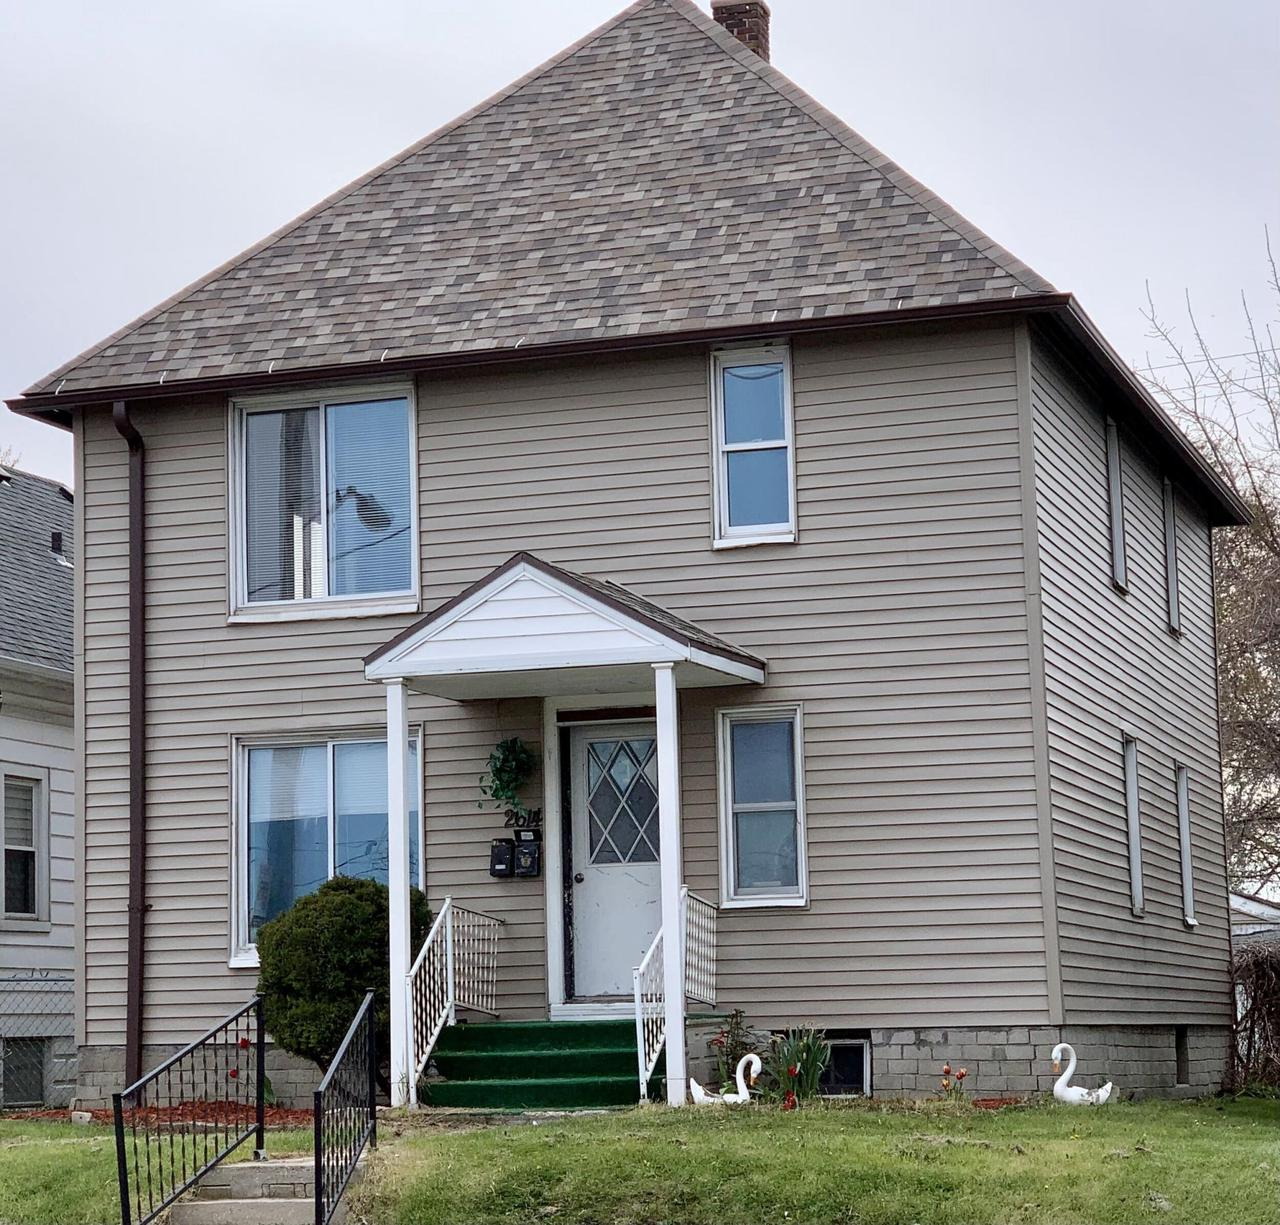 2614 S Chicago Ave AVENUE, SOUTH MILWAUKEE, WI 53172